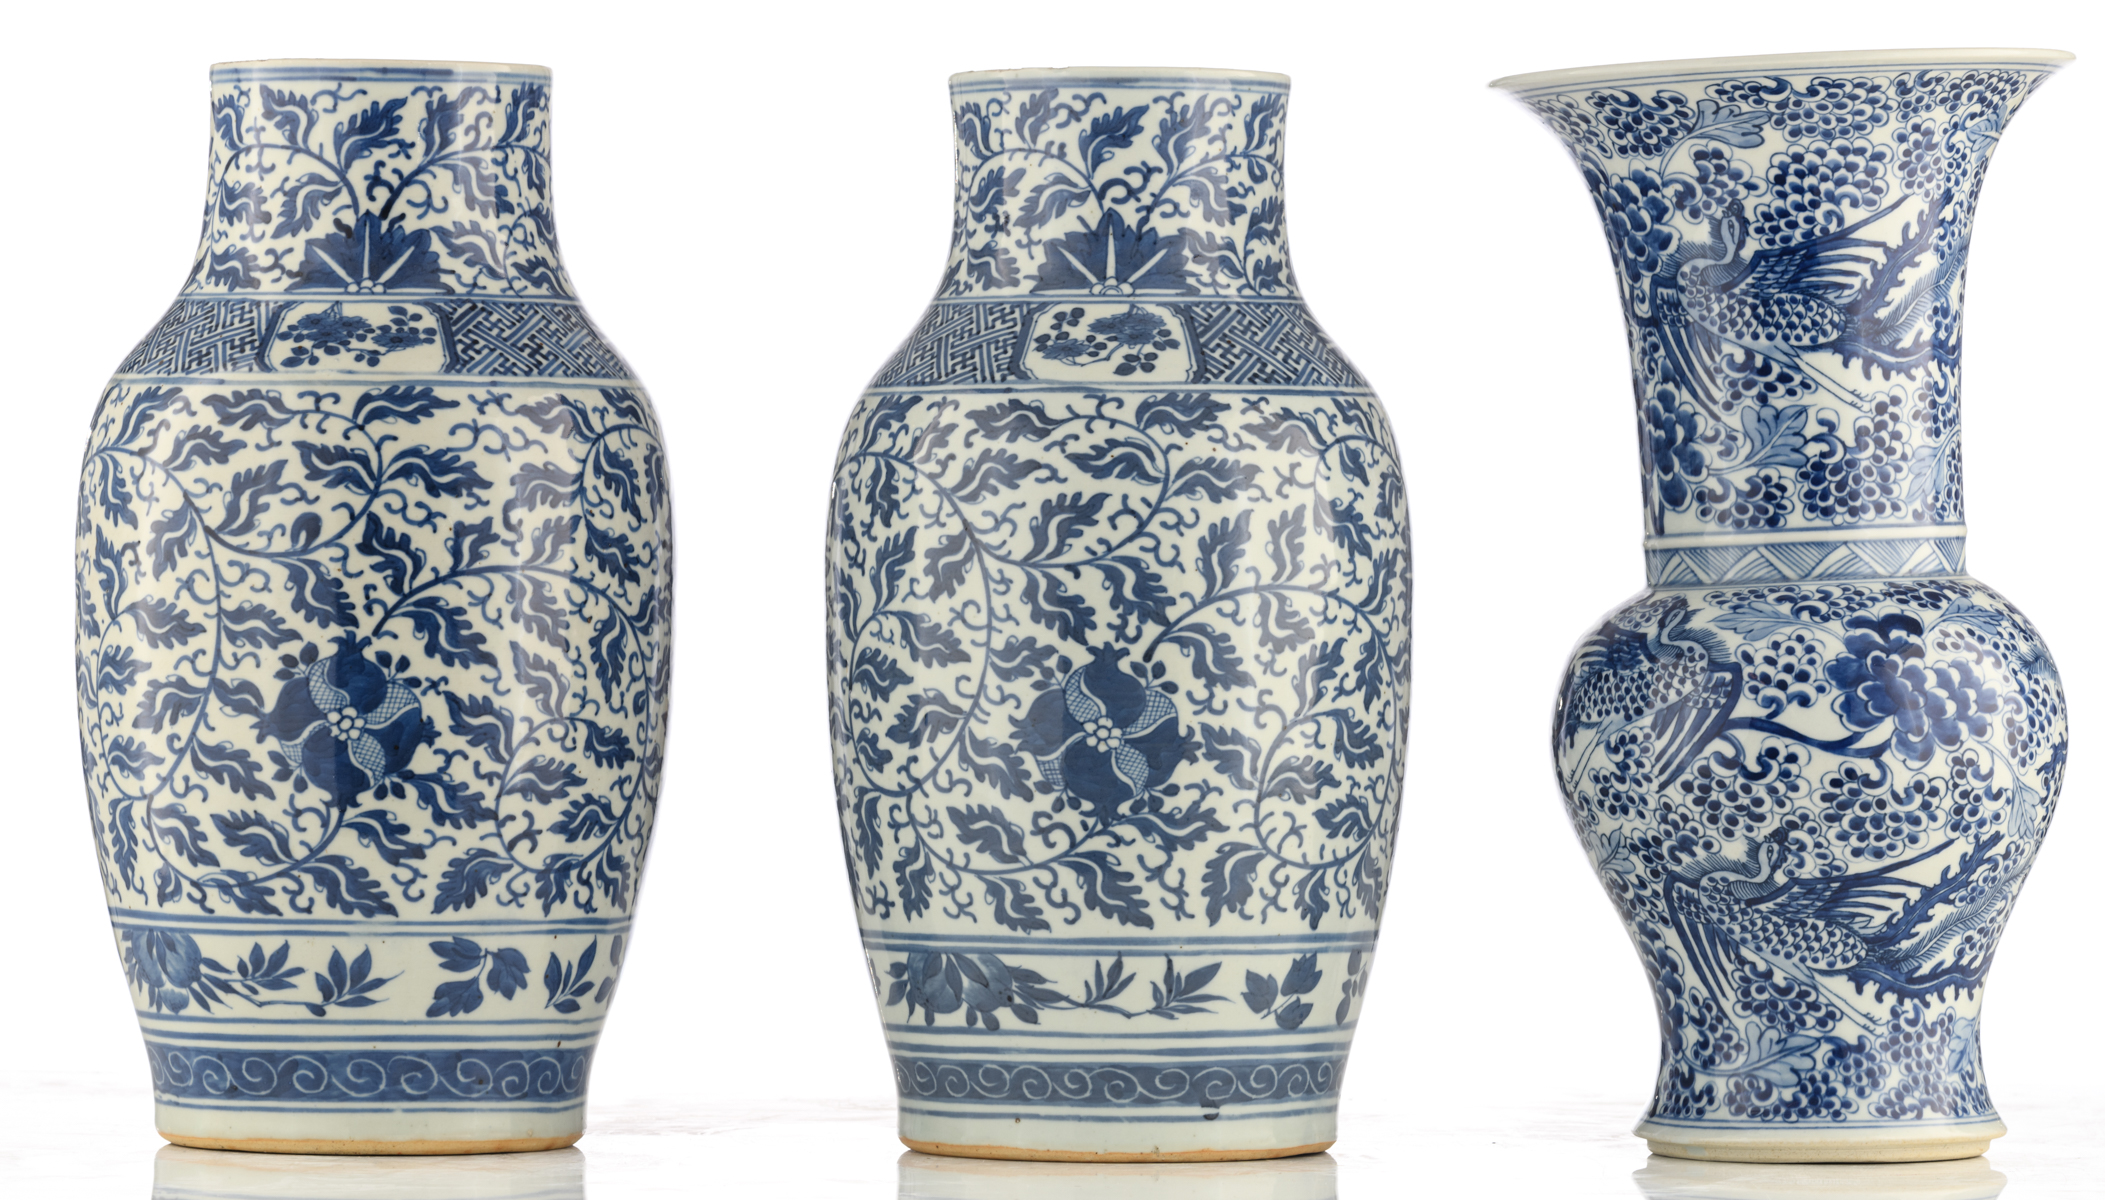 Lot 58 - A pair of Chinese floral decorated blue and white porcelain vases; added a ditto blue and white